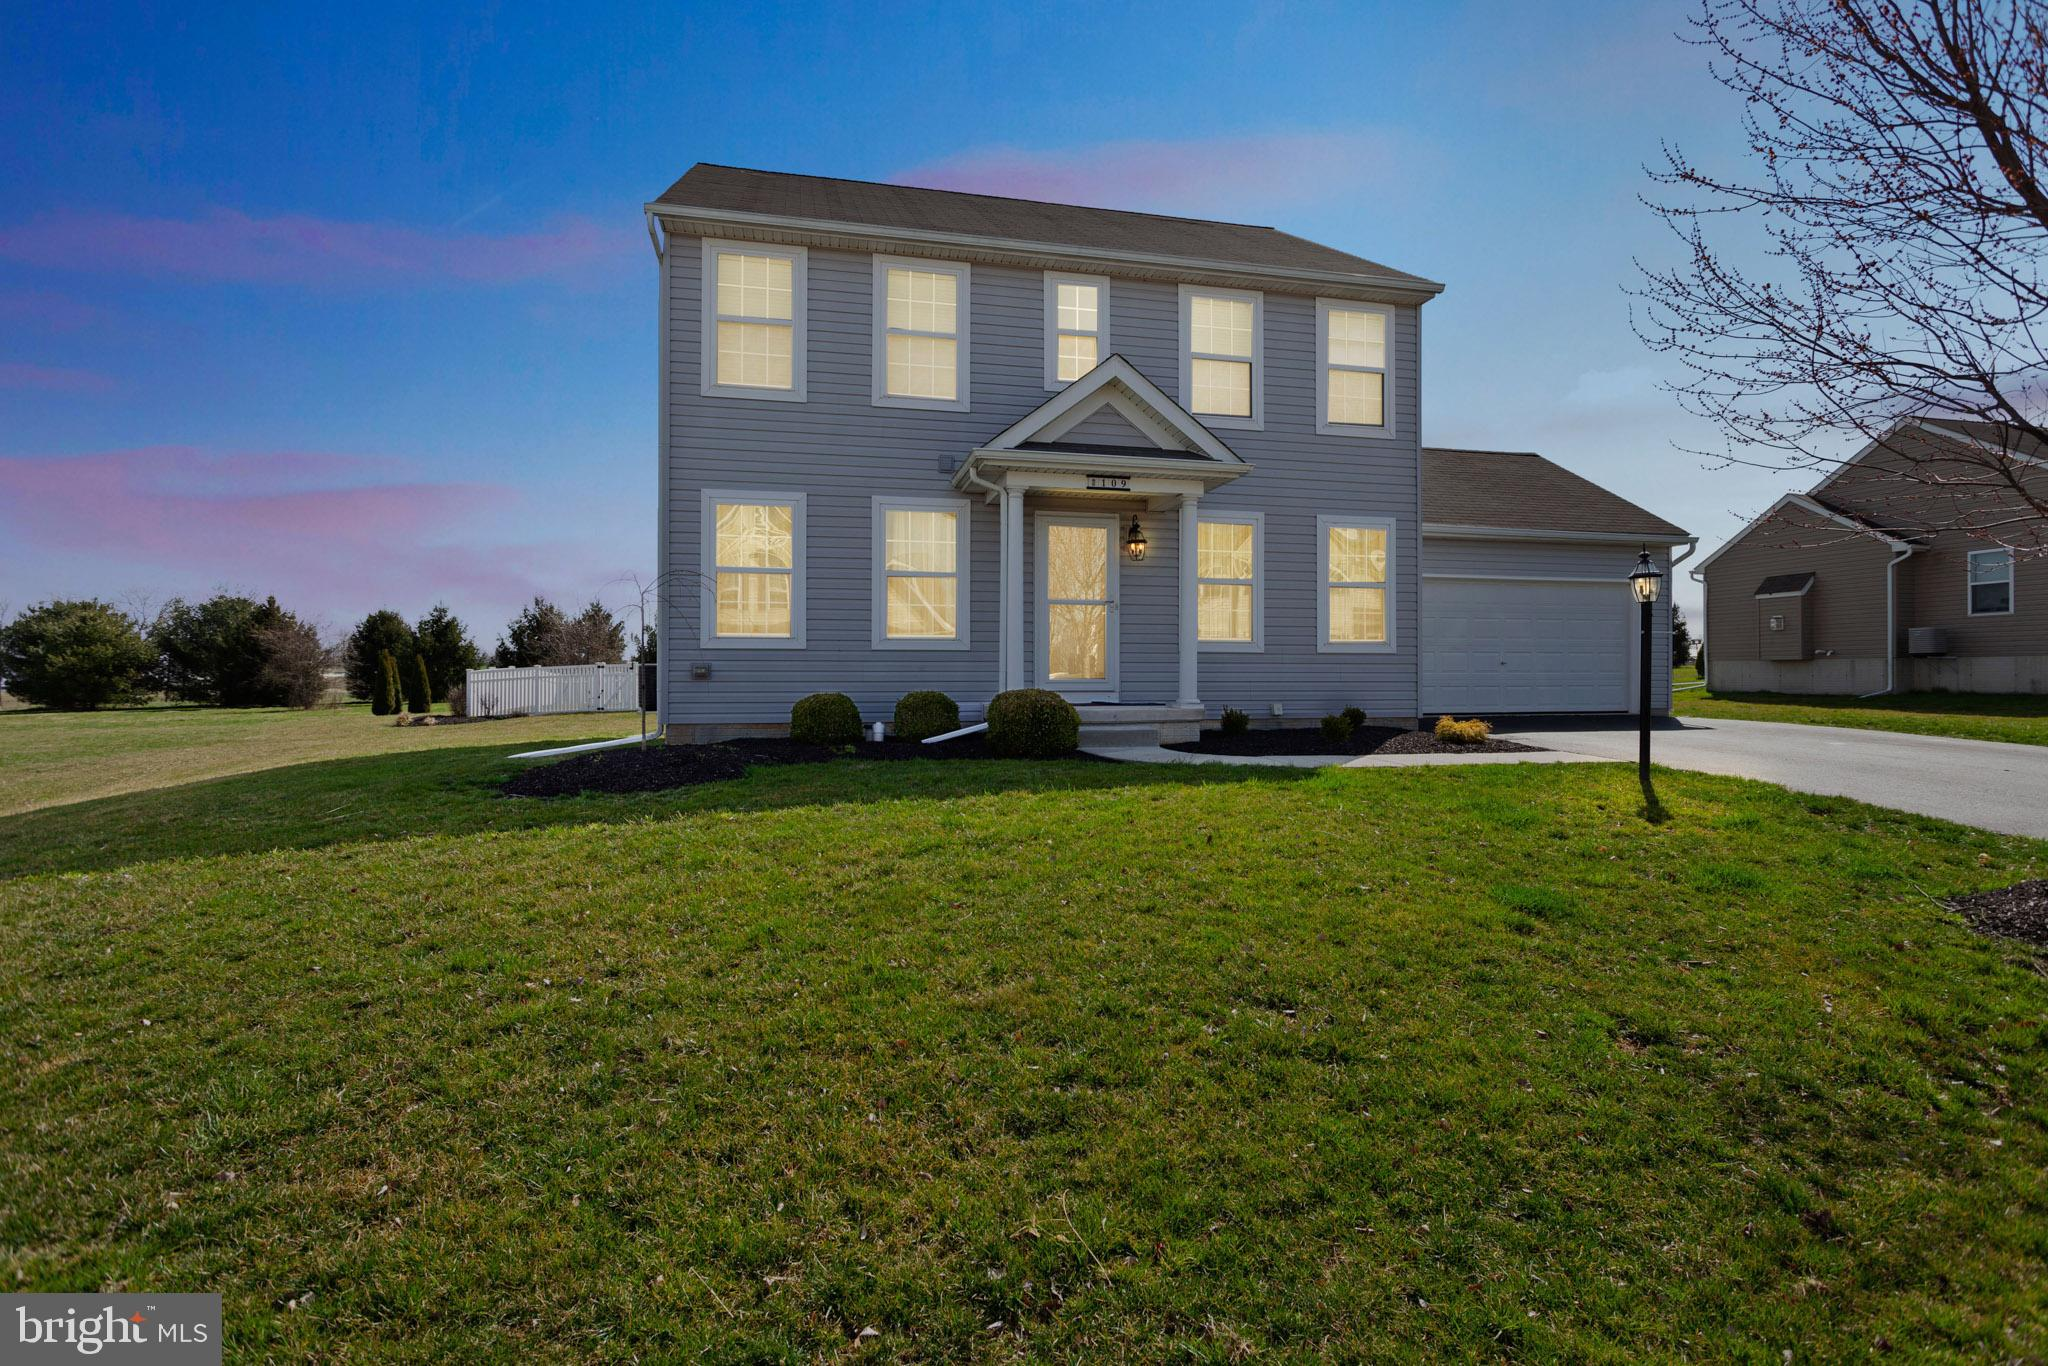 109 WHITE HORSE DR, HONEY BROOK, PA 19344